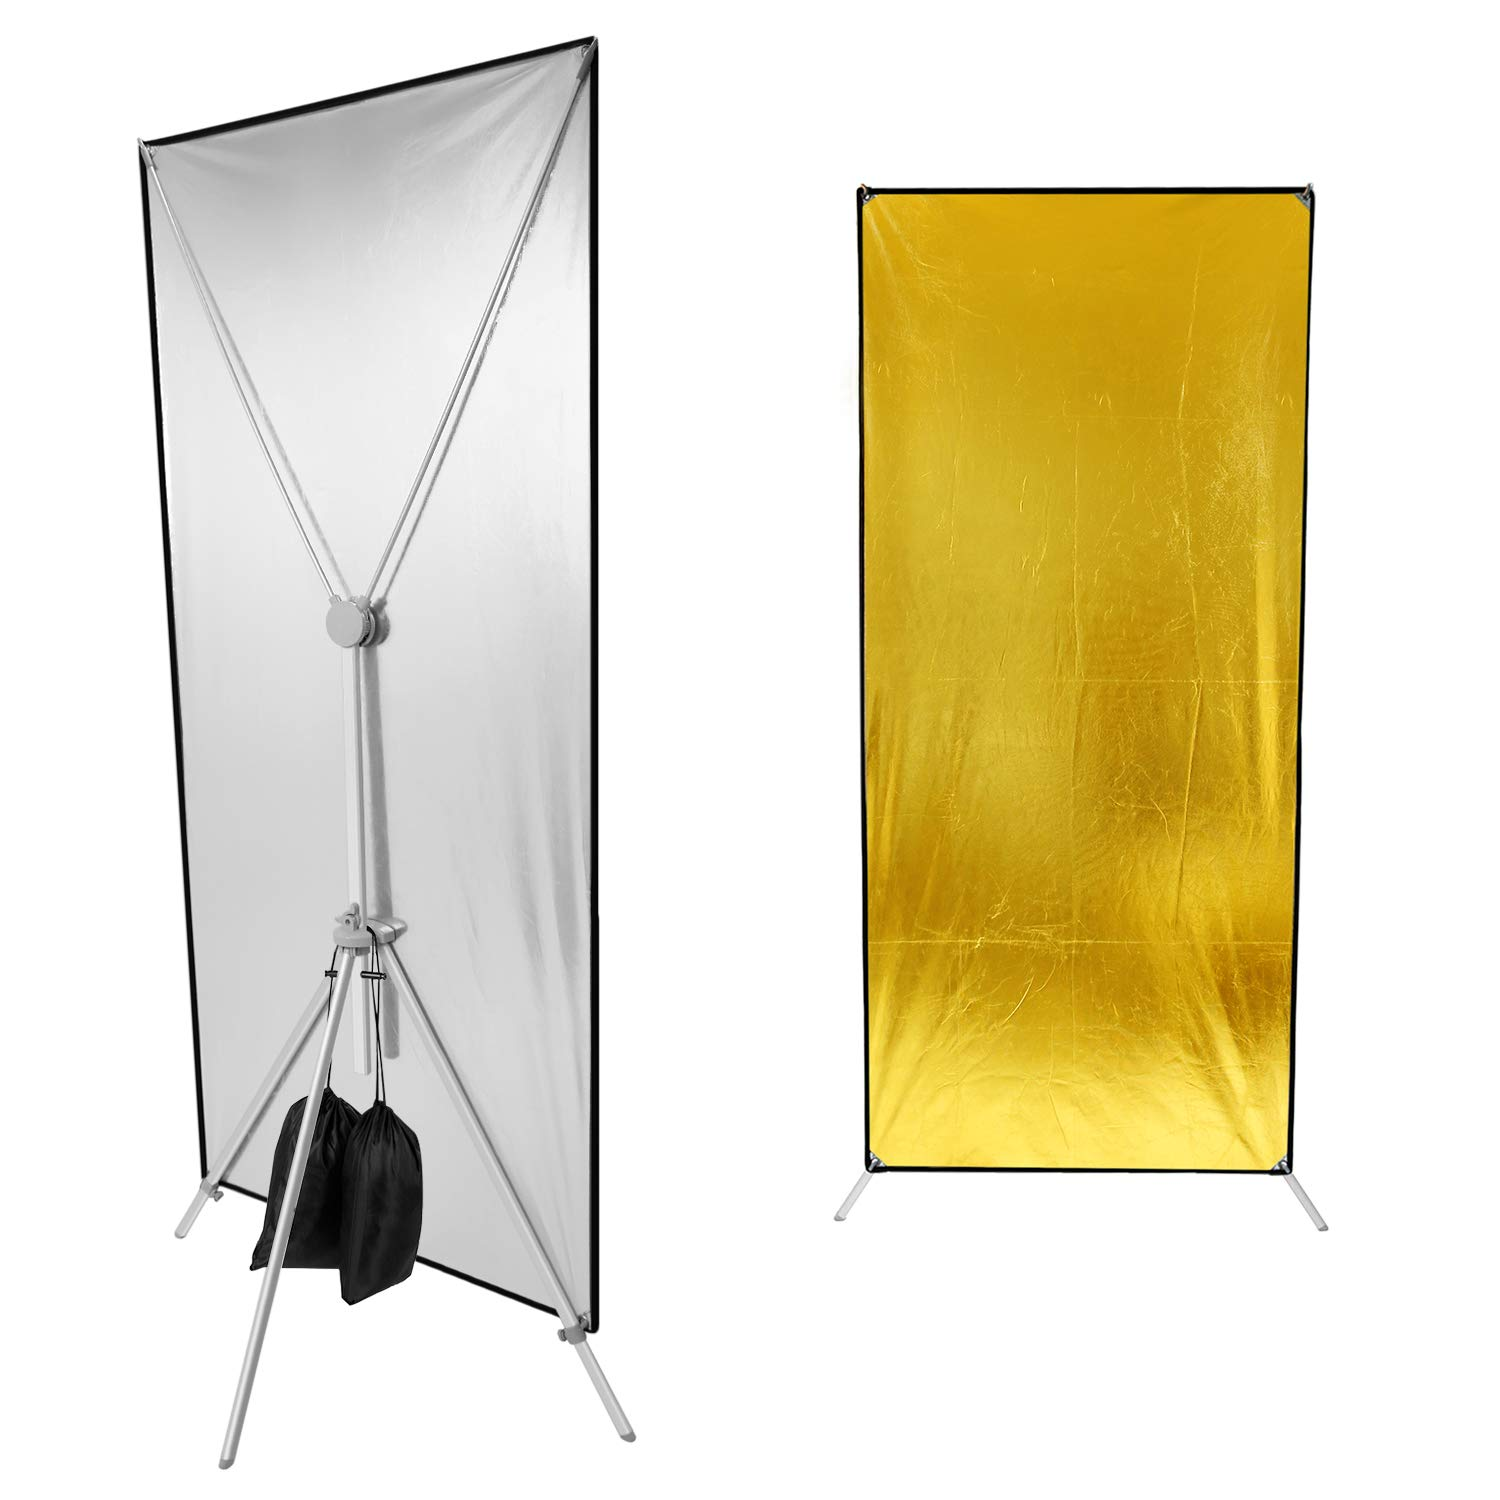 Neewer Photo Studio Gold/Silver Flat Panel Reflector 35×71 inches/89×180 Centimeters Lighting Reflector for Professional Photo Studio Indoor Lighting with Stand by Neewer